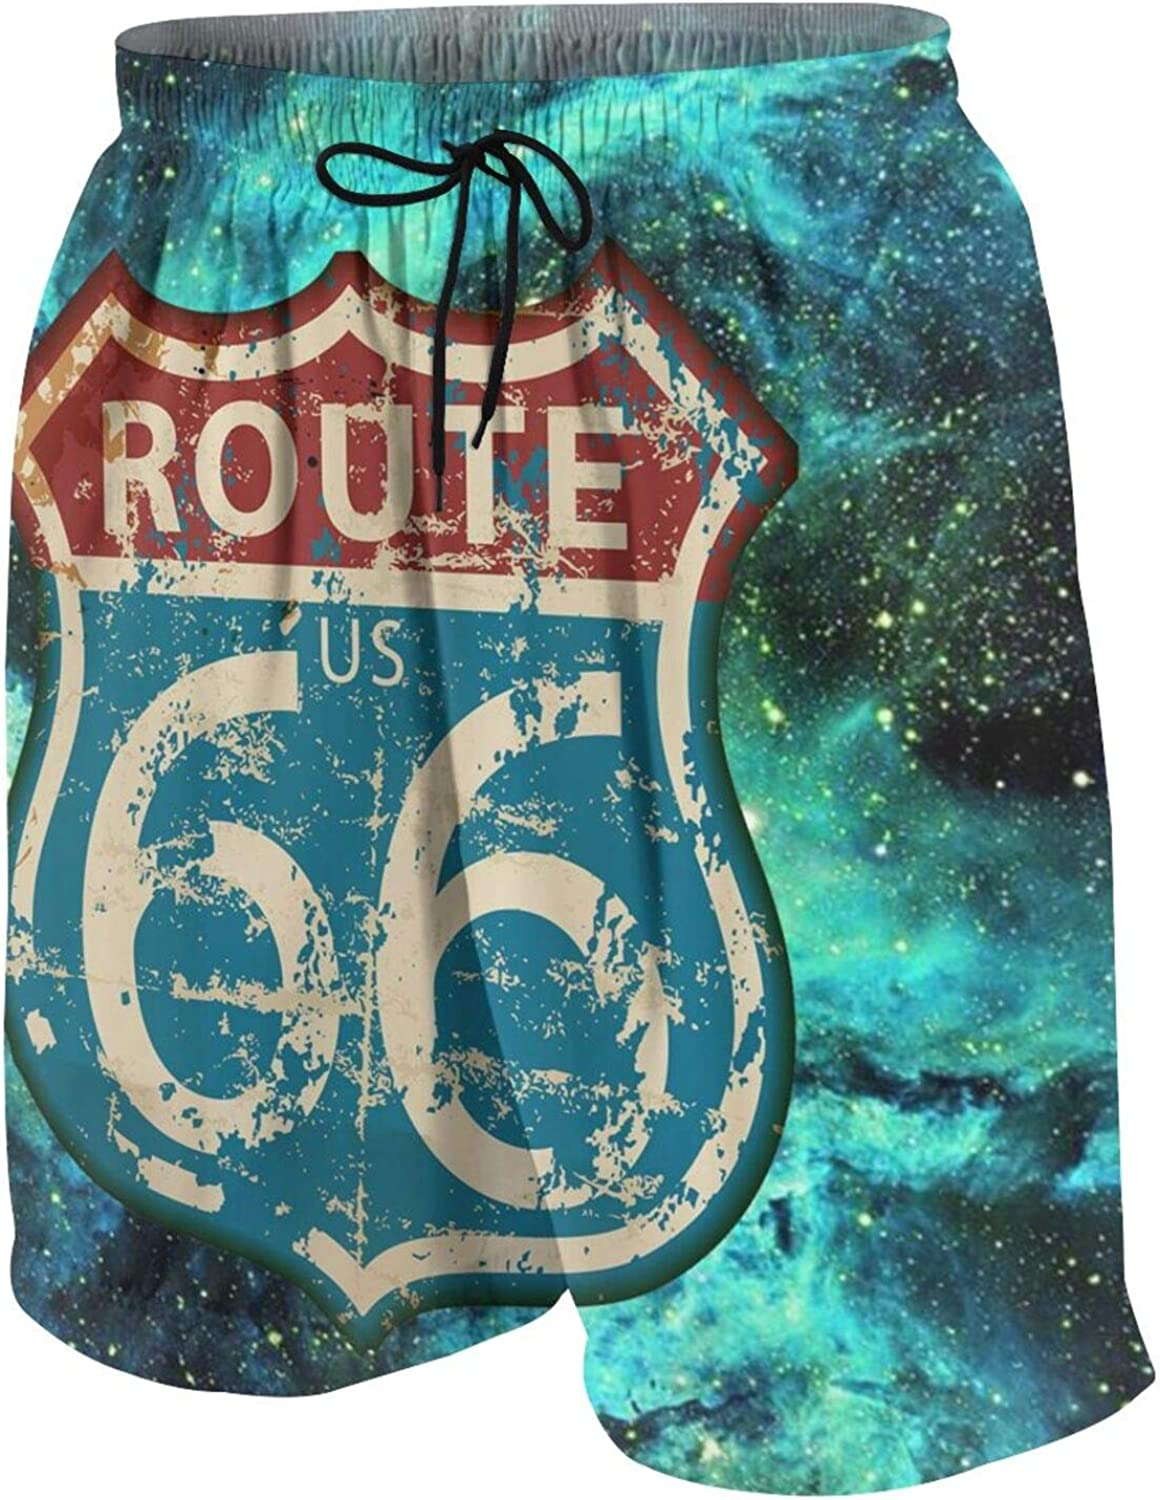 America Highway Travel Lifestyle Route 66 Swim Trunks Quick Dry Beach Board Shorts Bathing Suit with Pockets for Teen Boys